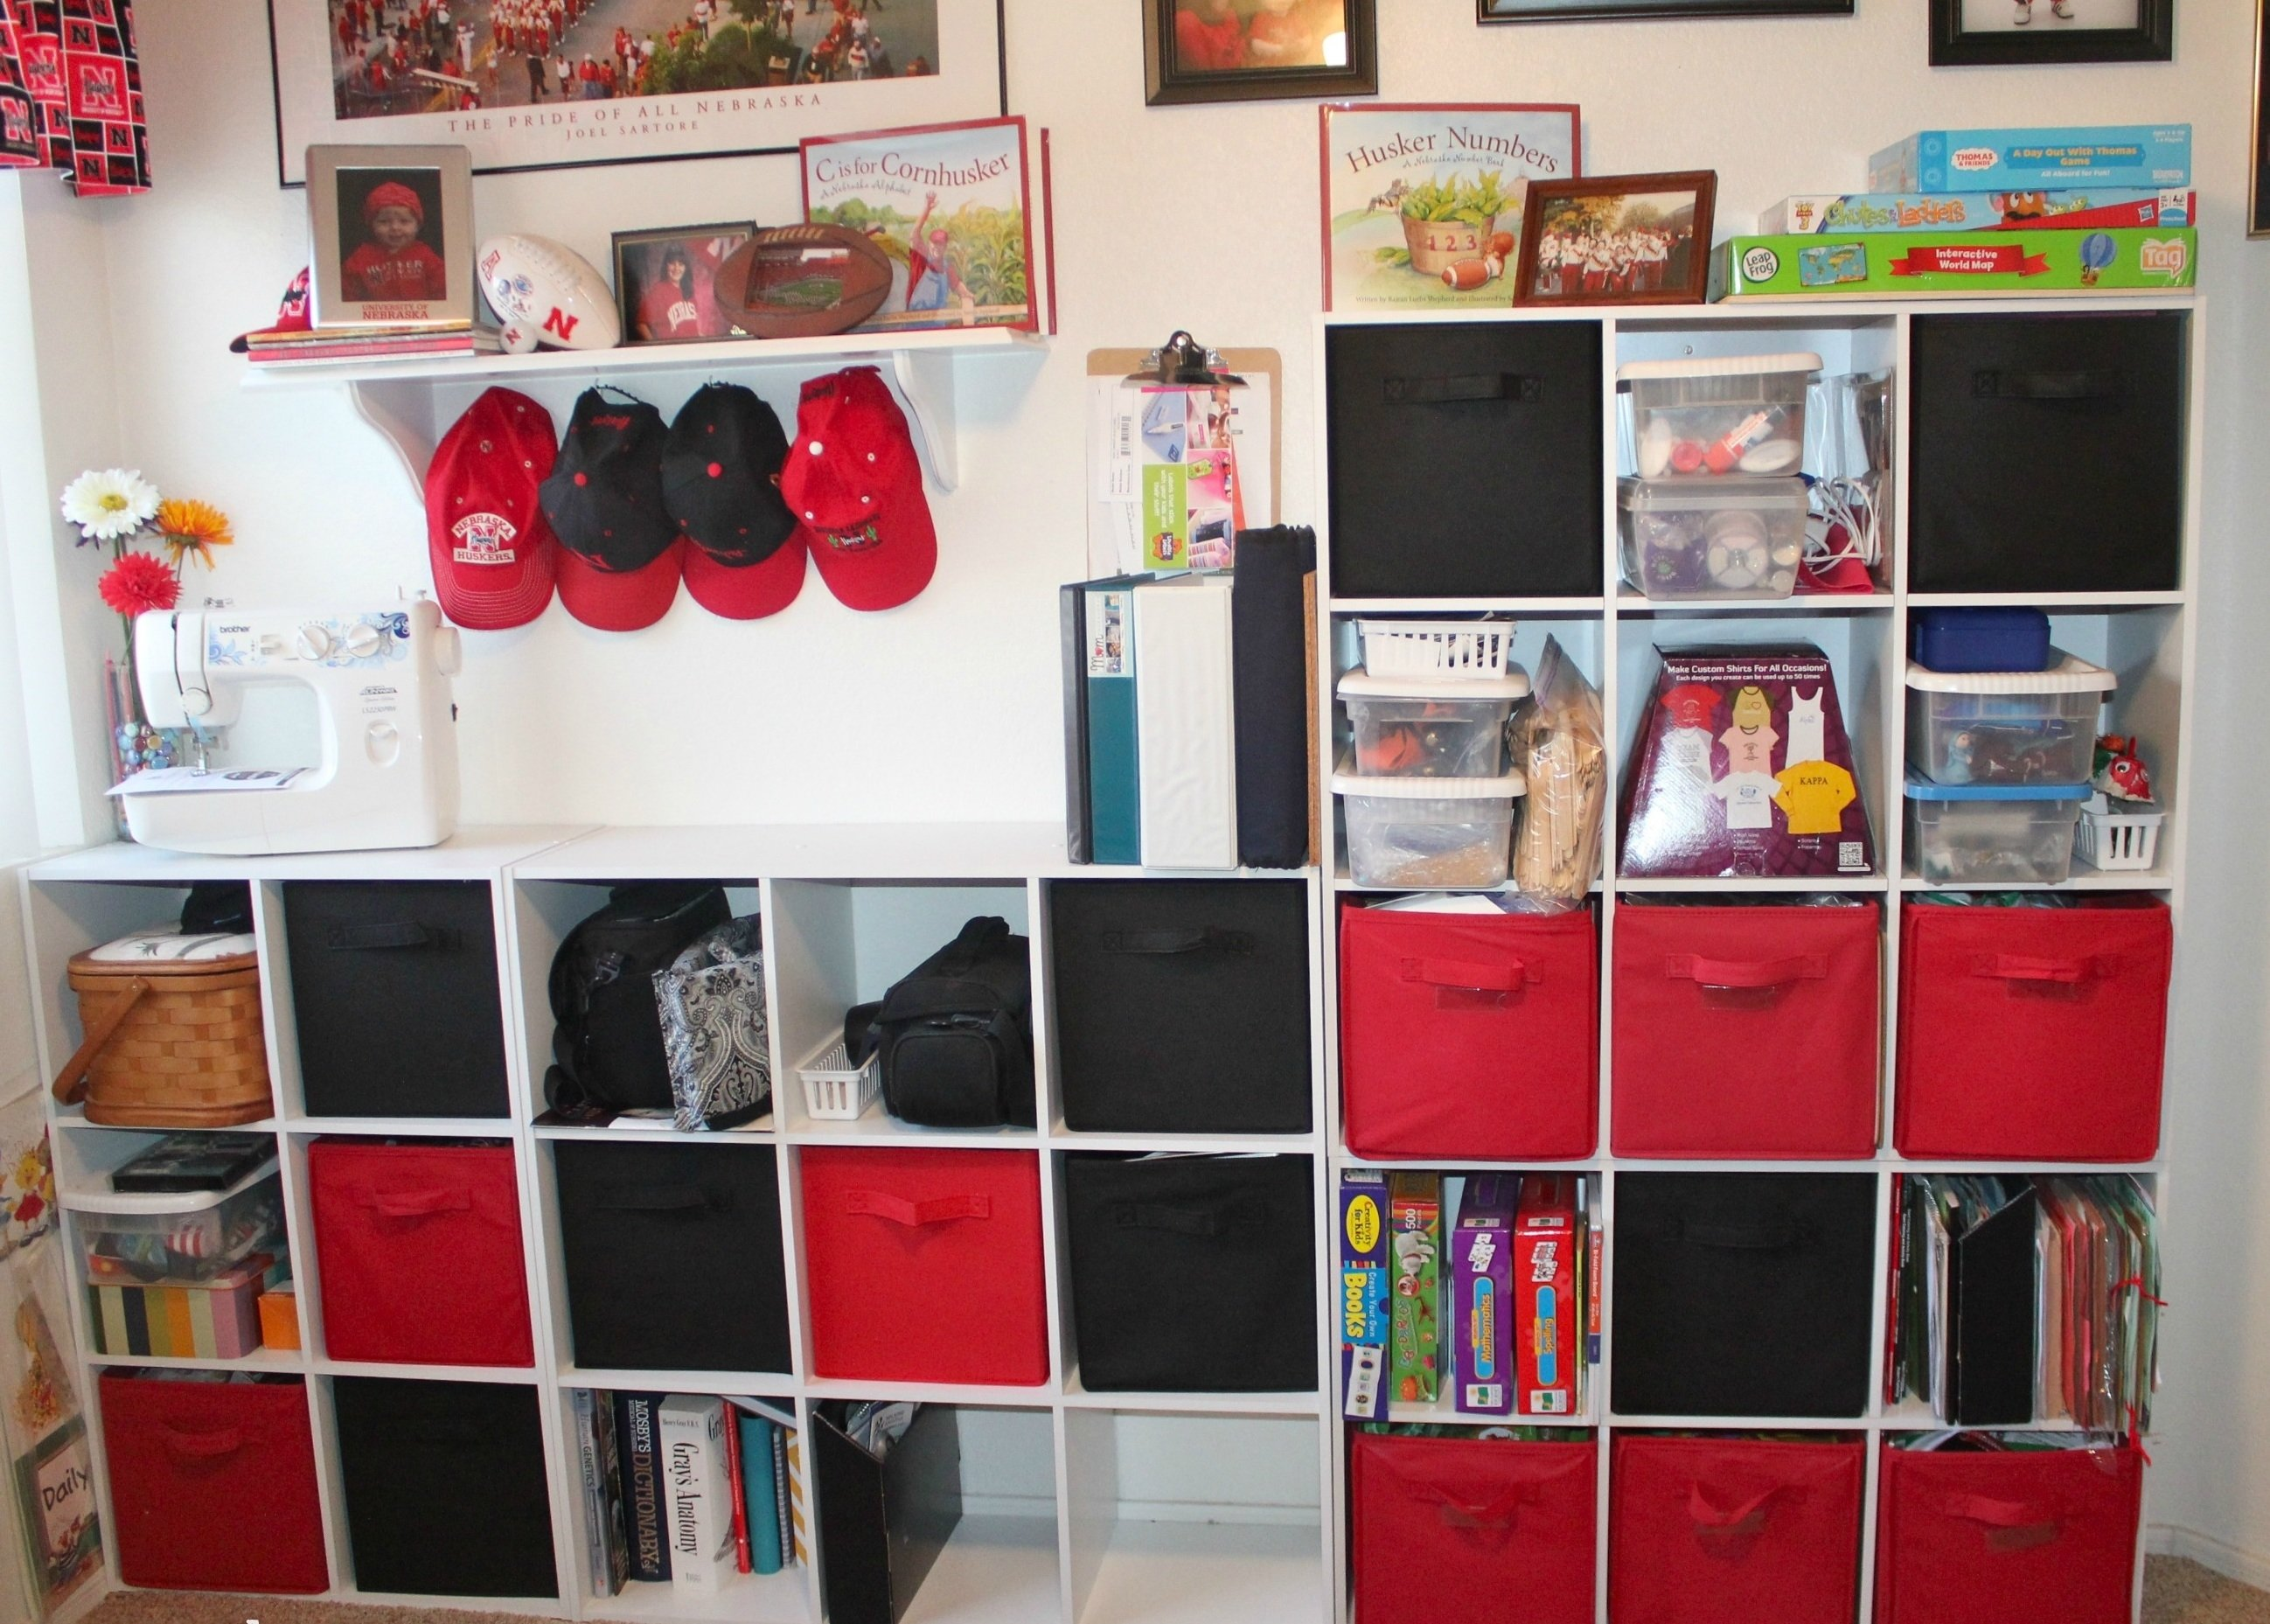 10 Nice Storage Ideas For Small Rooms incredible storage ideas for small bedrooms in house decor 2020